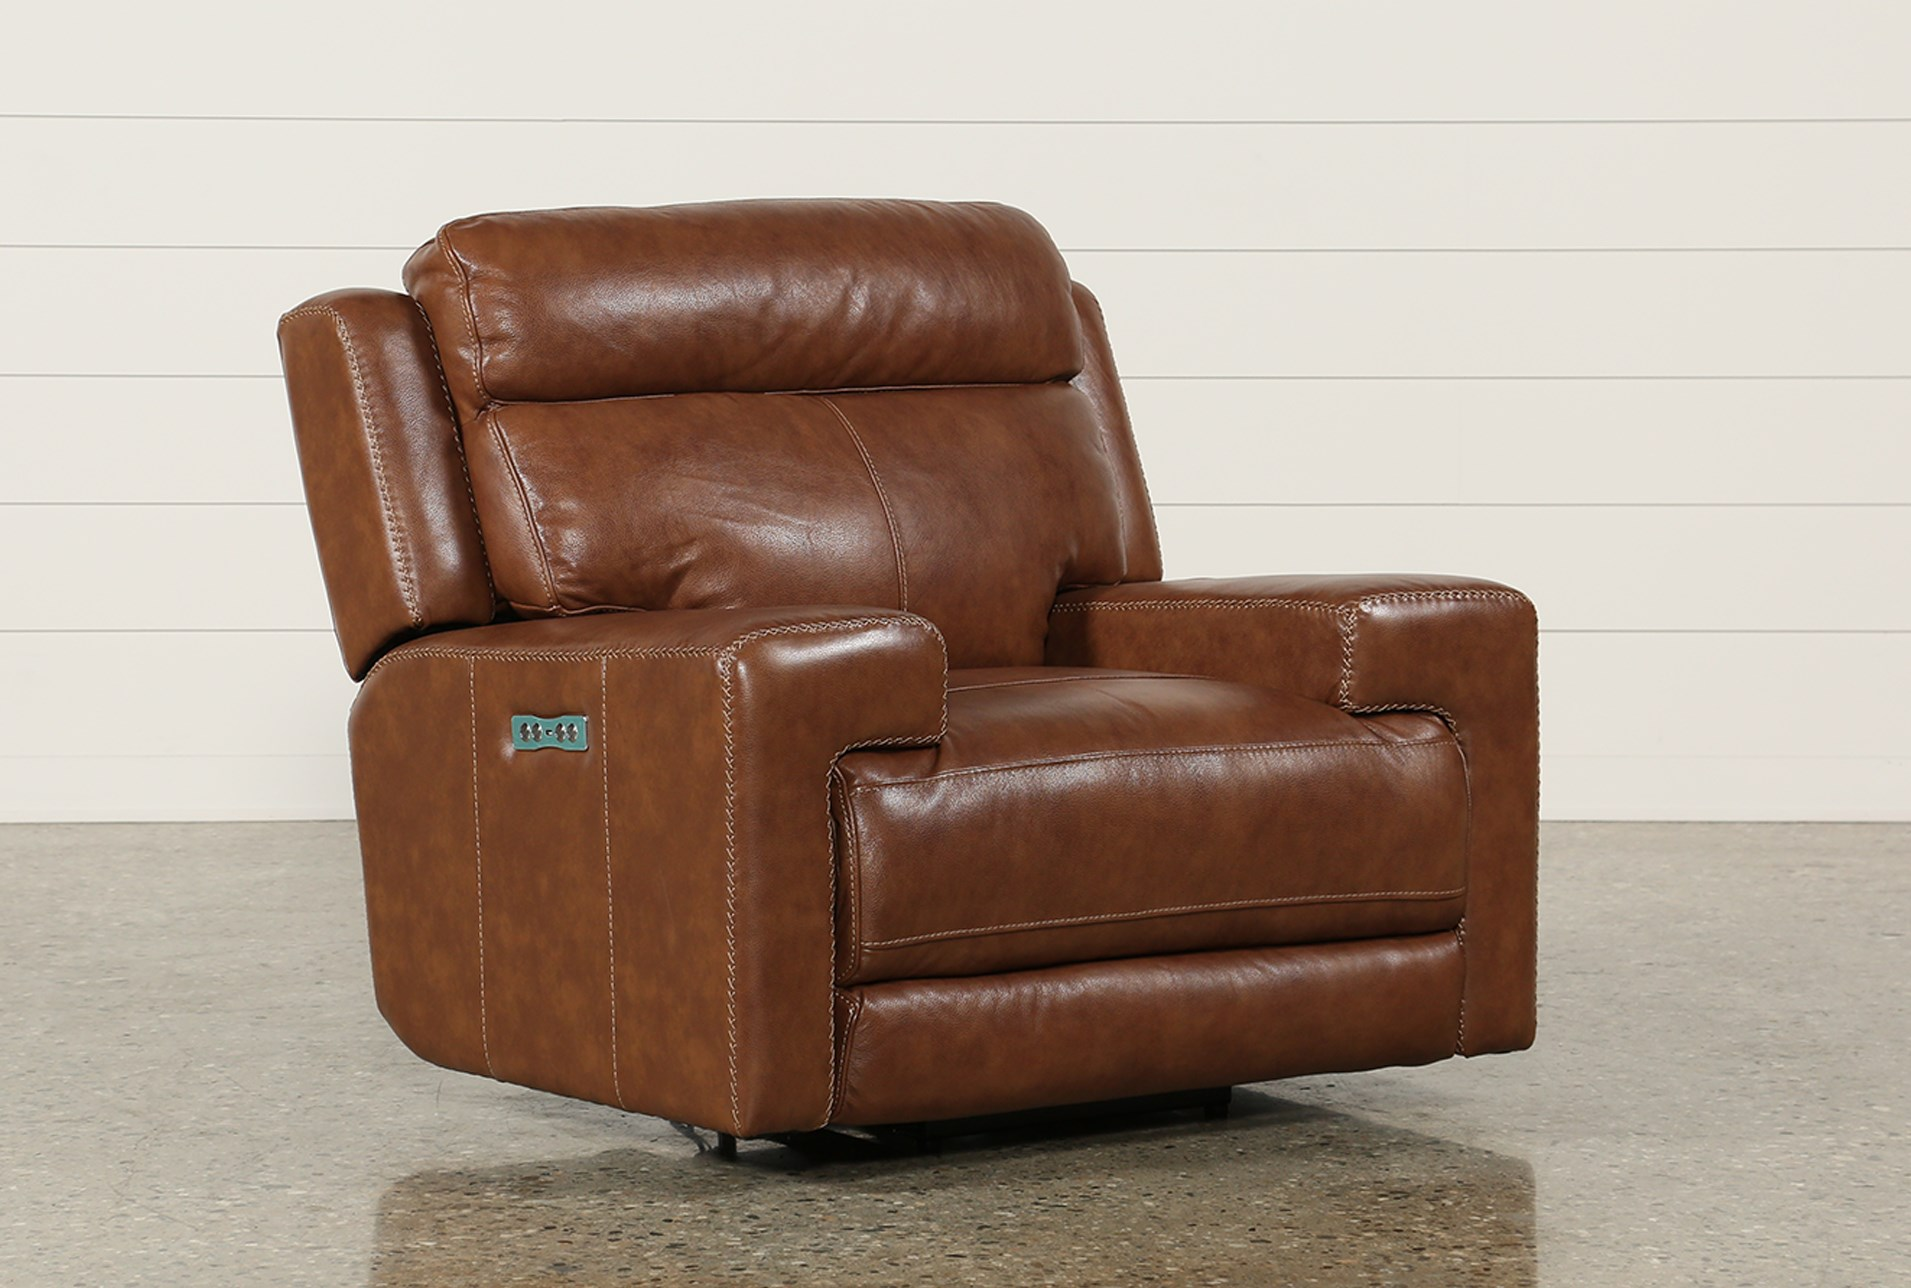 go furniture walmart com sets reclining chairs to rooms sofa ideas room images recliner shocking living